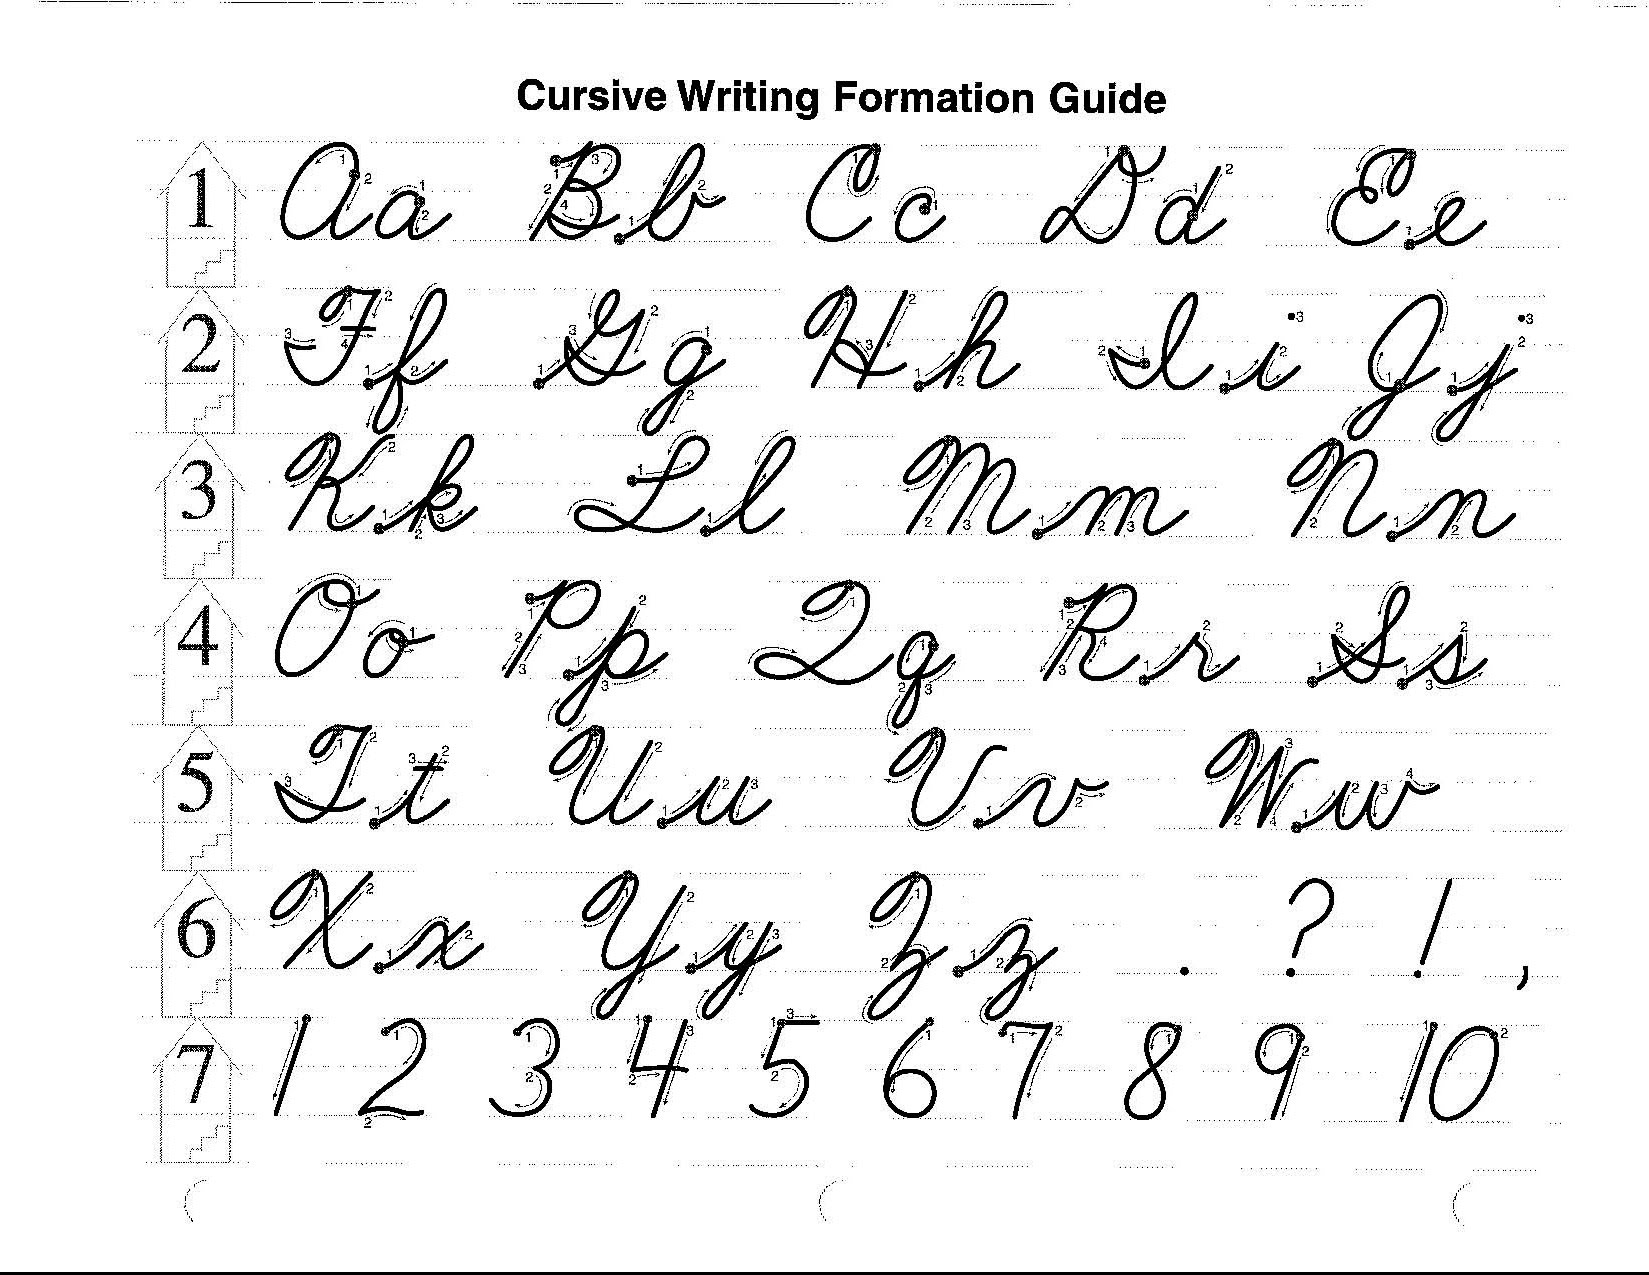 Worksheet Longhand Writing Alphabet cursive writing alphabet islamichomeeducation alphabet